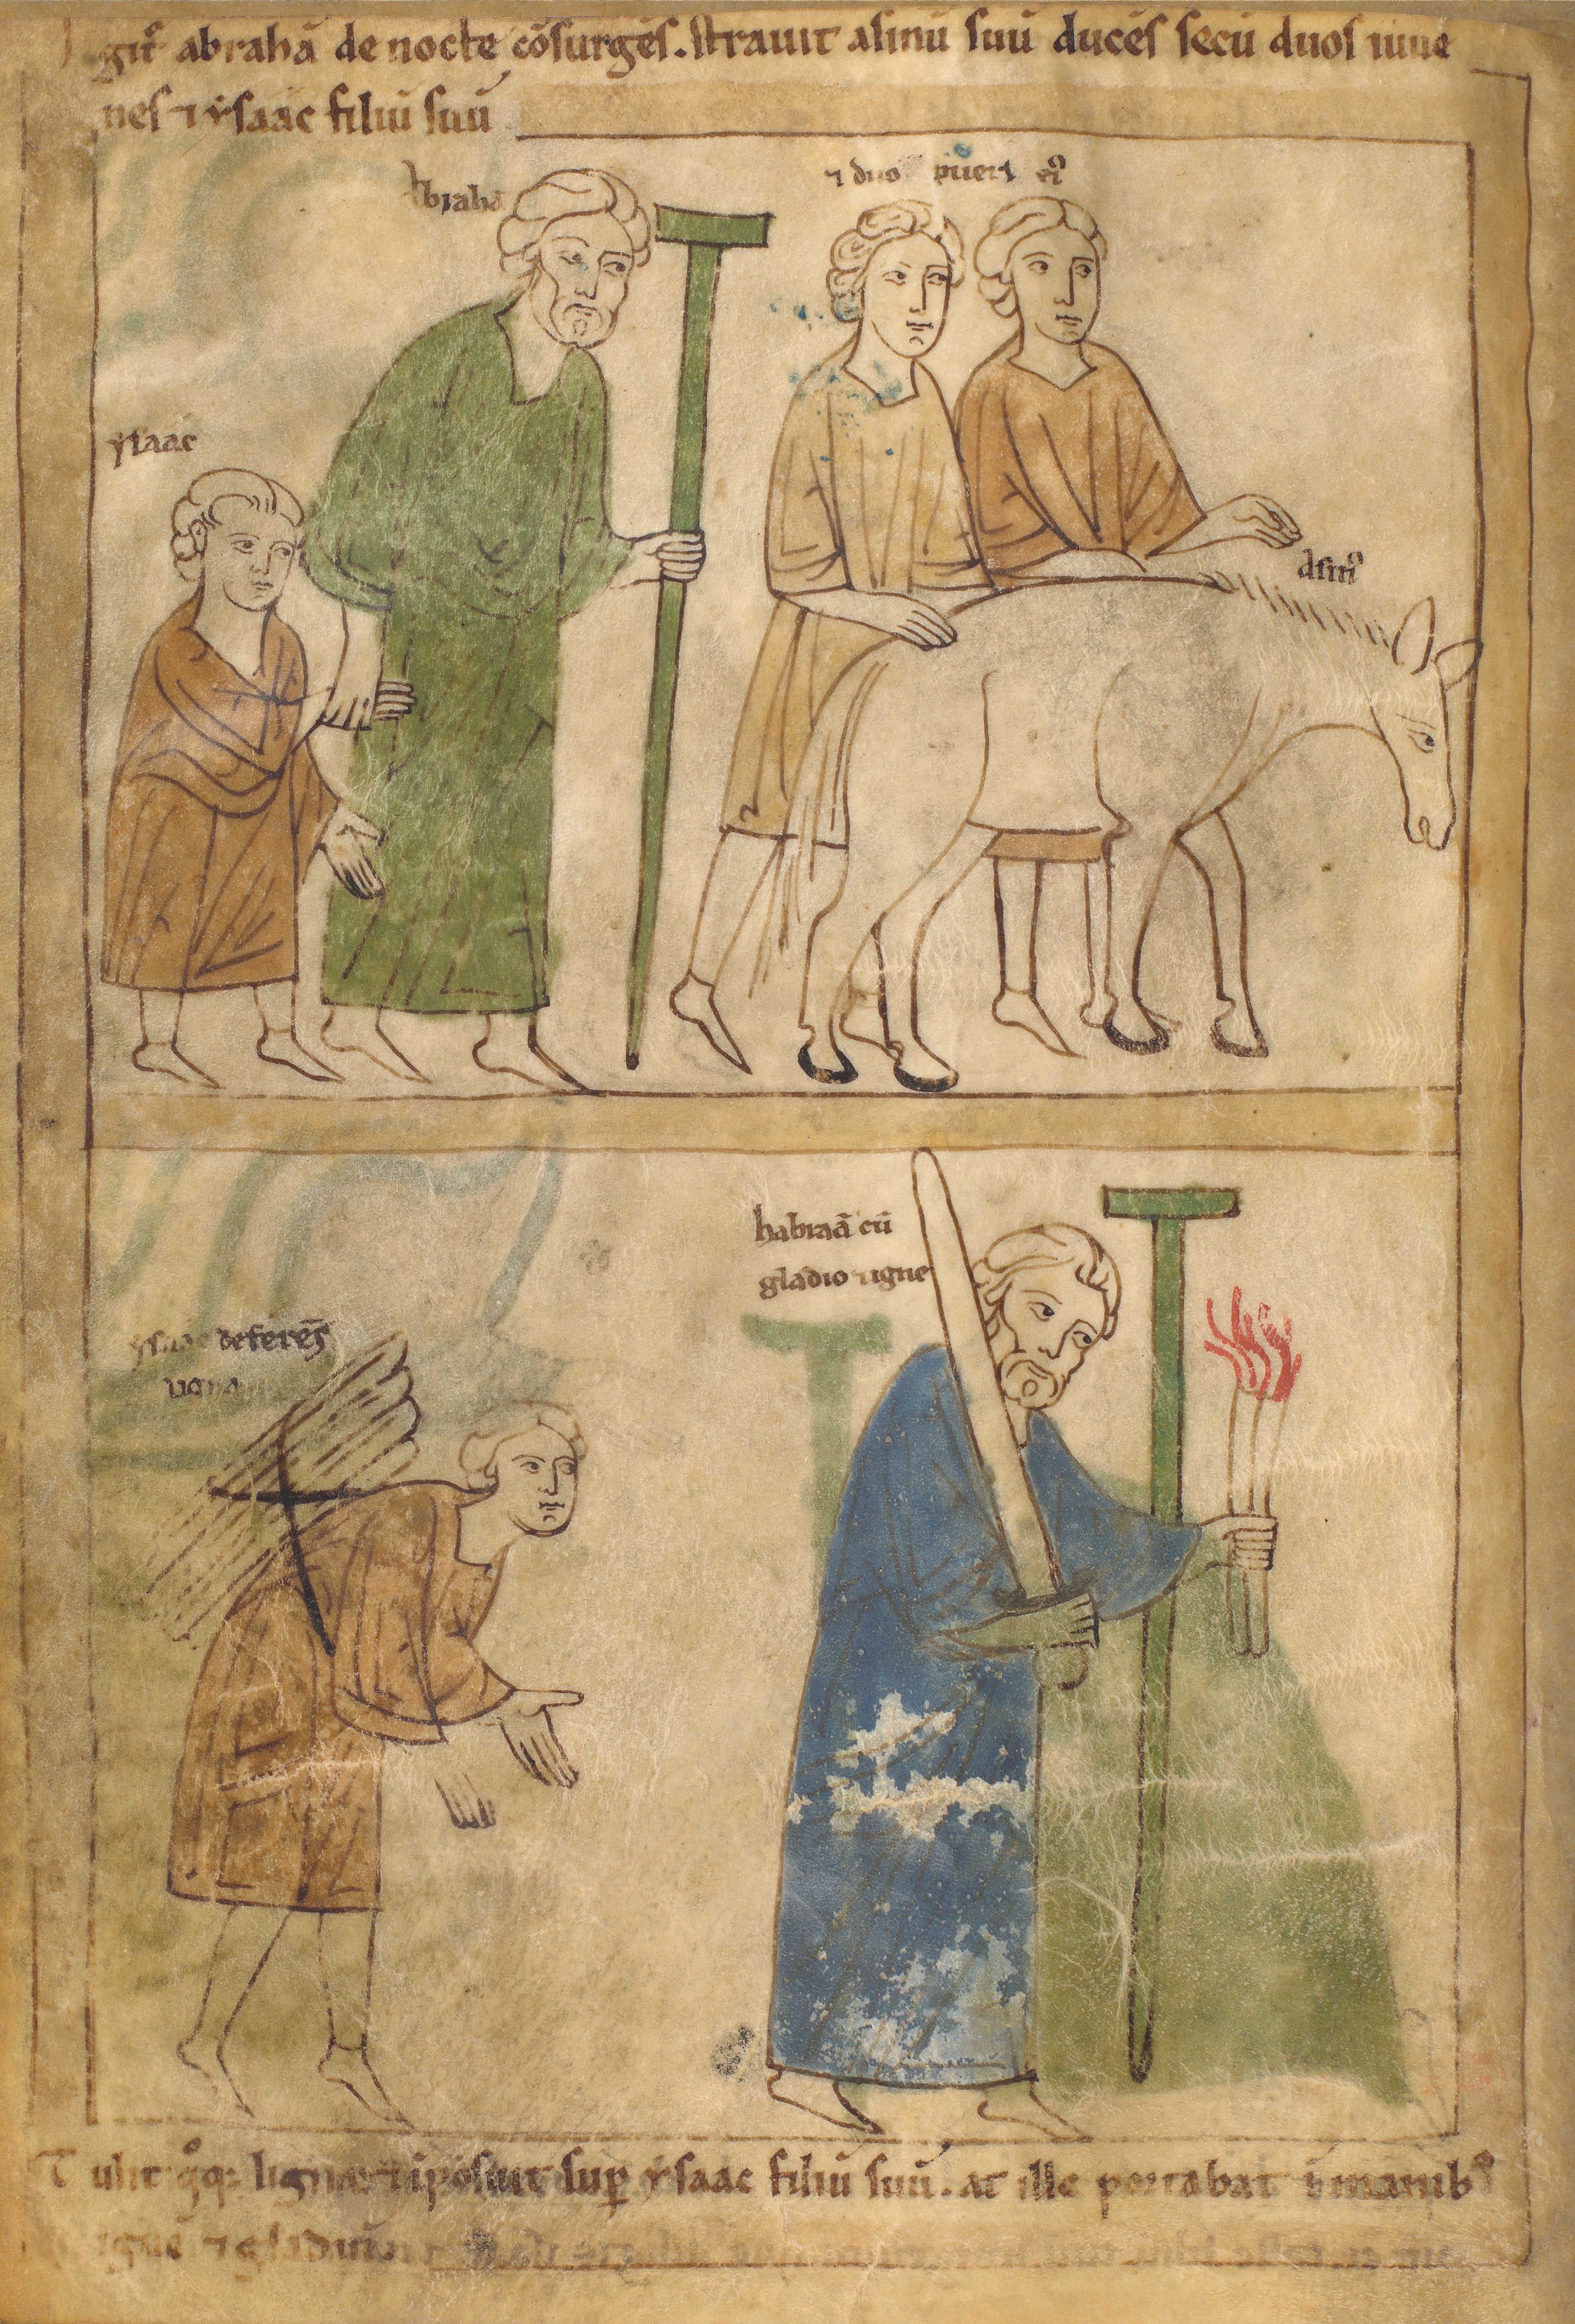 Seconde Bible de Pampelune, folio 20v.